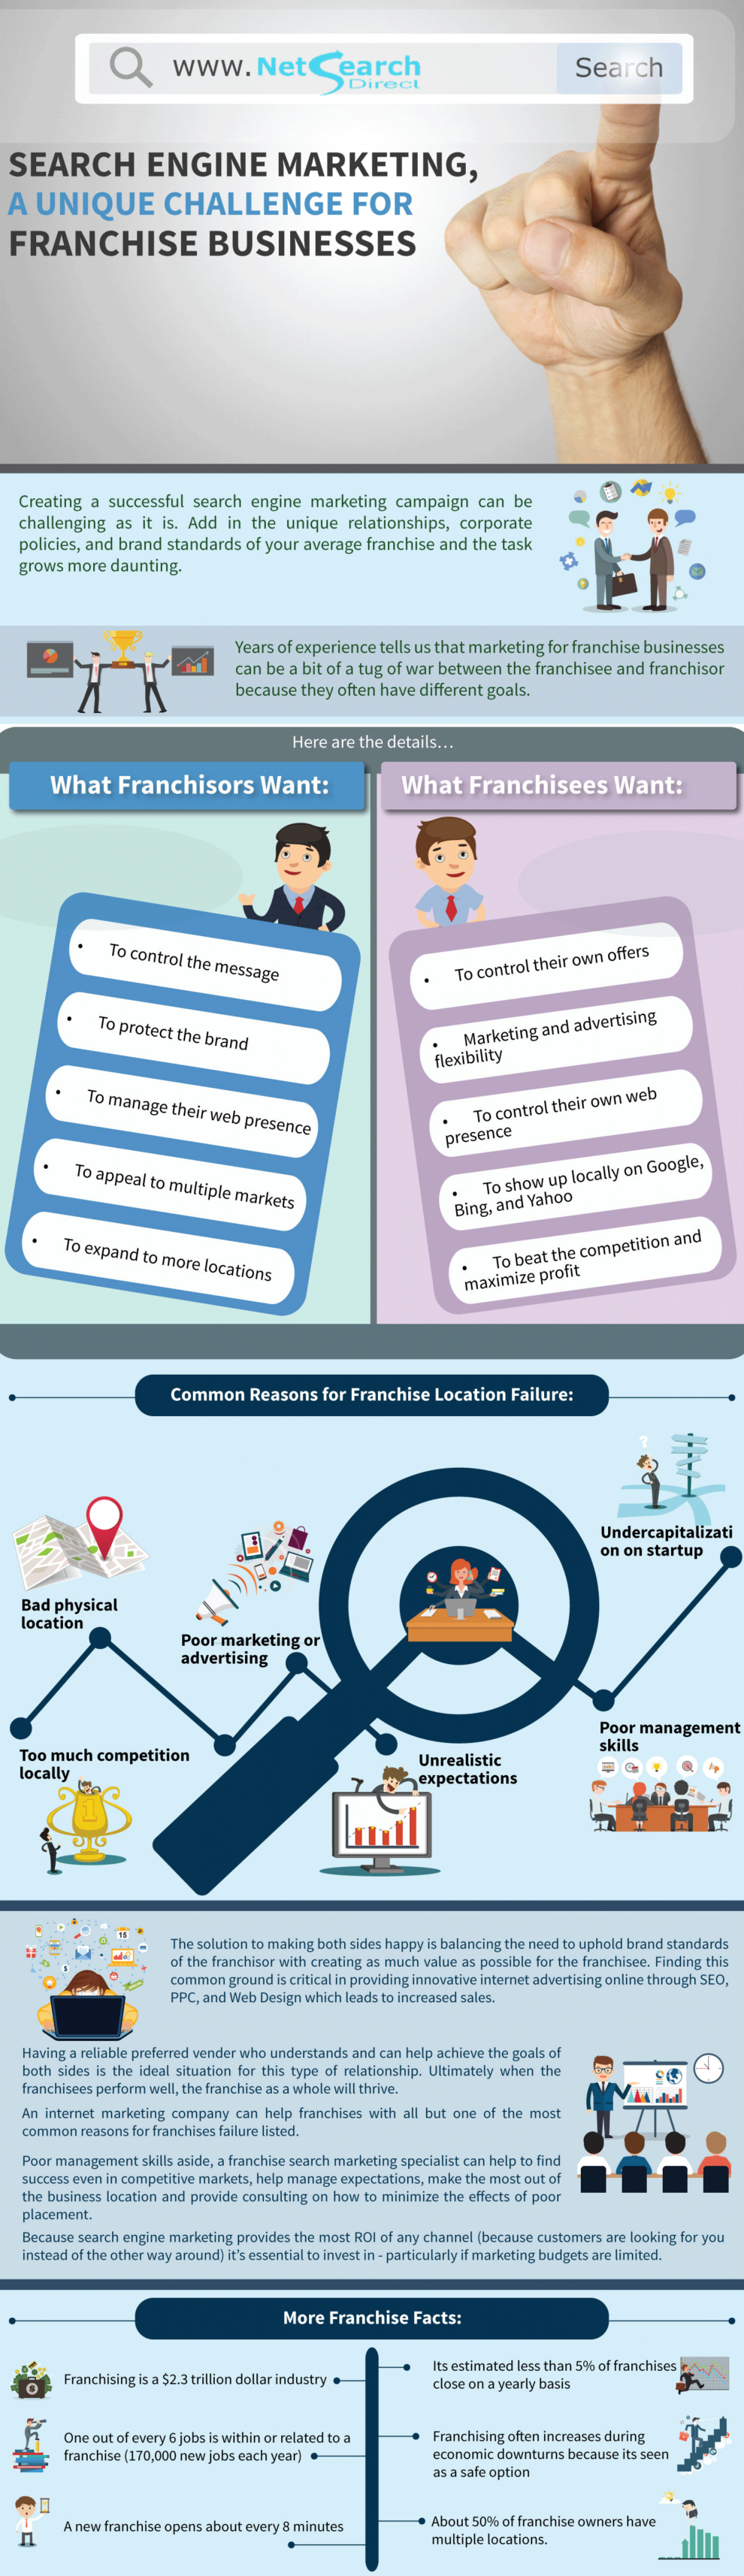 NSD-Franchise-Marketing-Infographic-990x3429